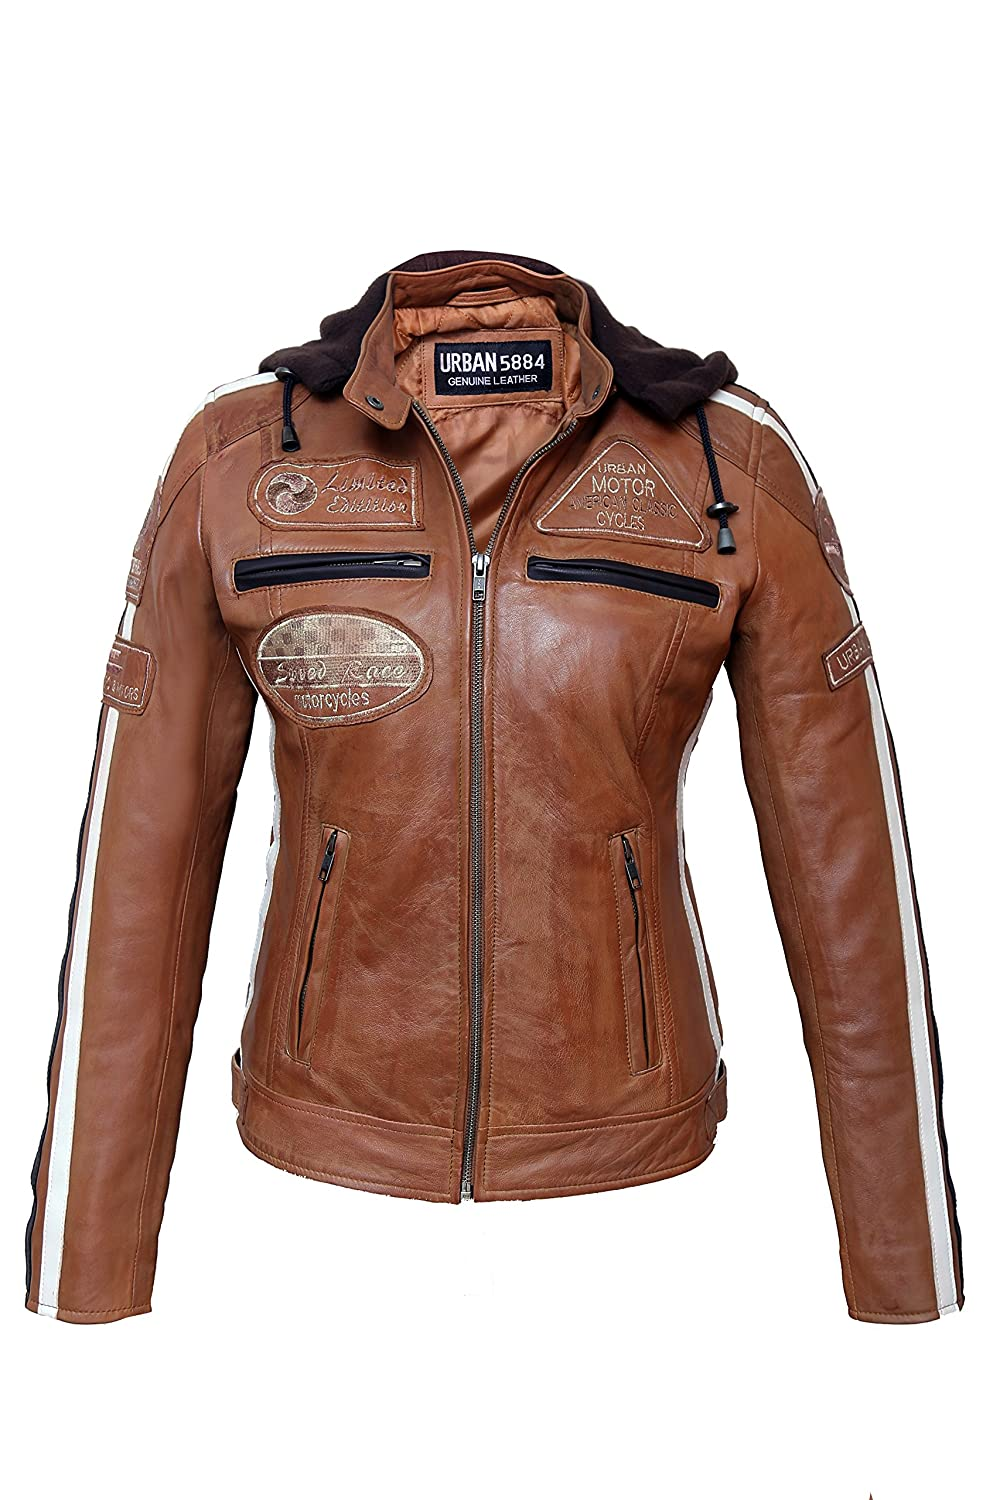 Urban Leather 58 Leren Bikerjack, Chaqueta de Moto para Mujer, Marrón (Tan), 36 / S